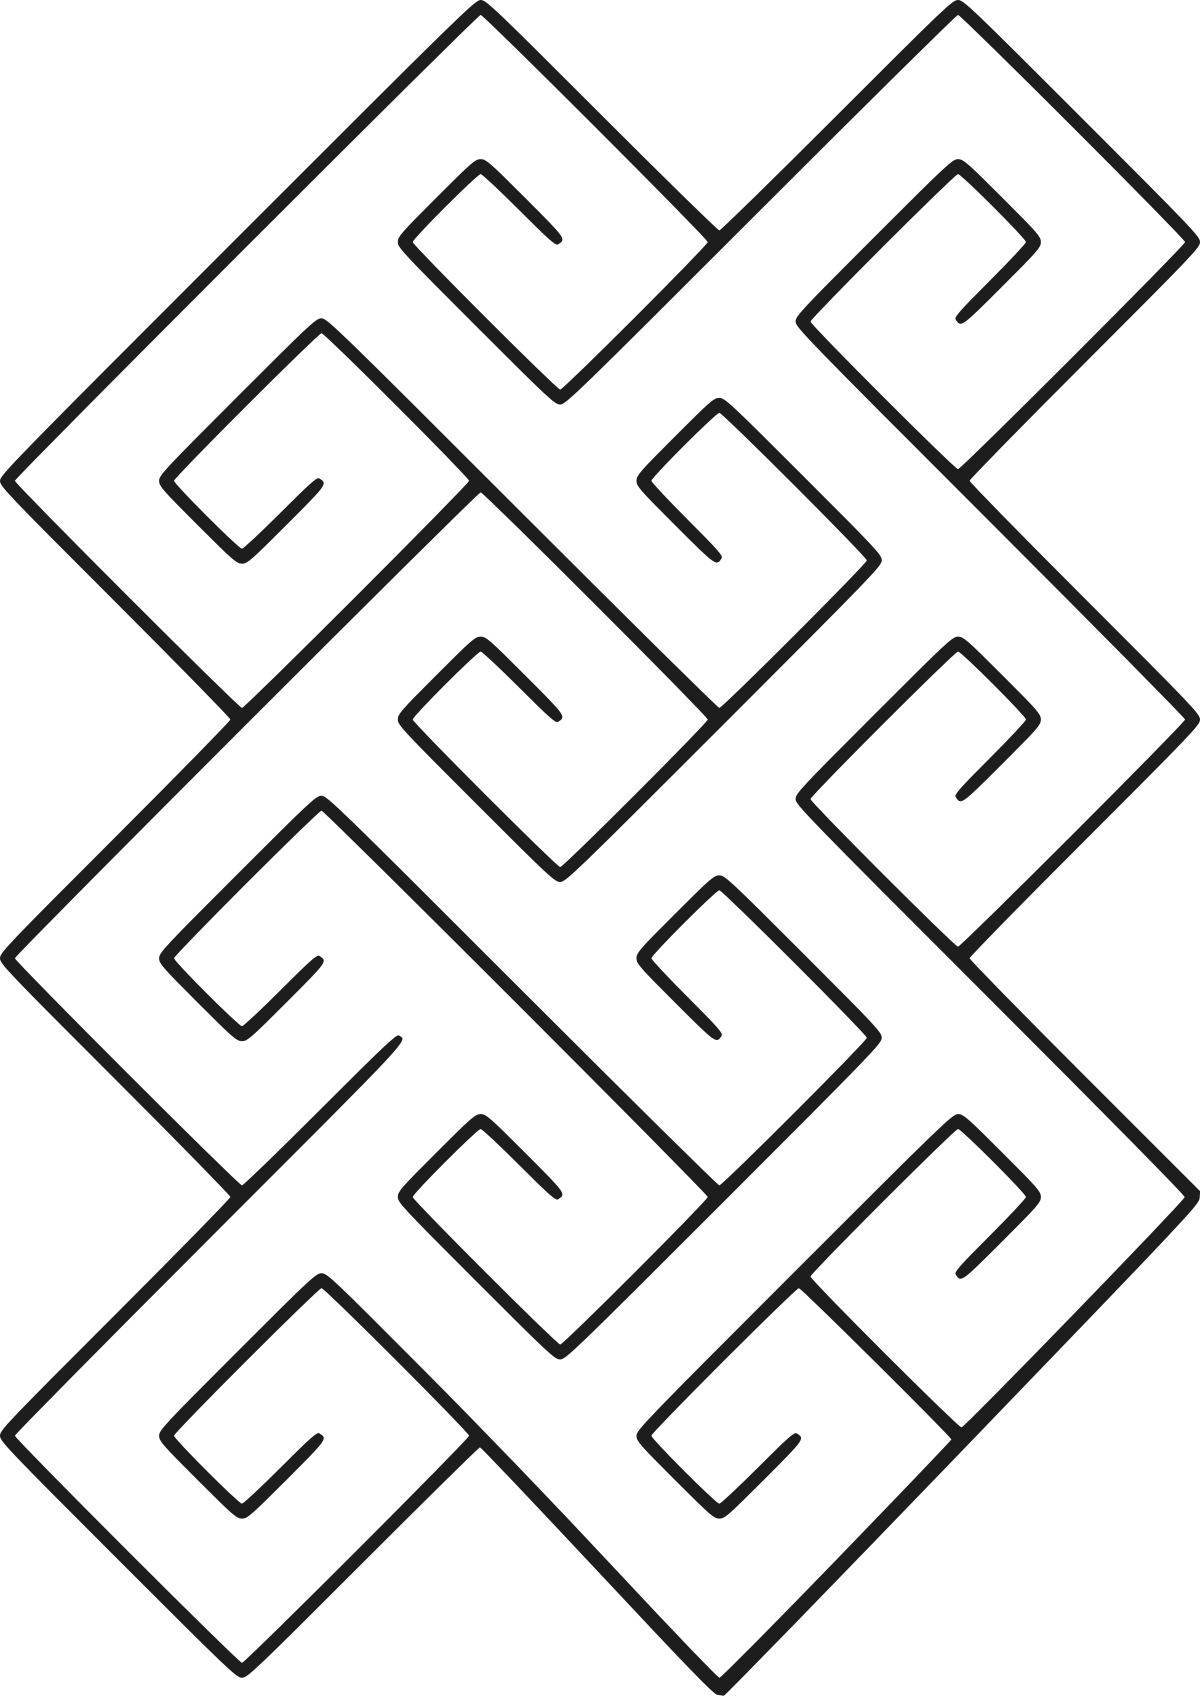 Drawing mazes simple square. Build a backyard labyrinth